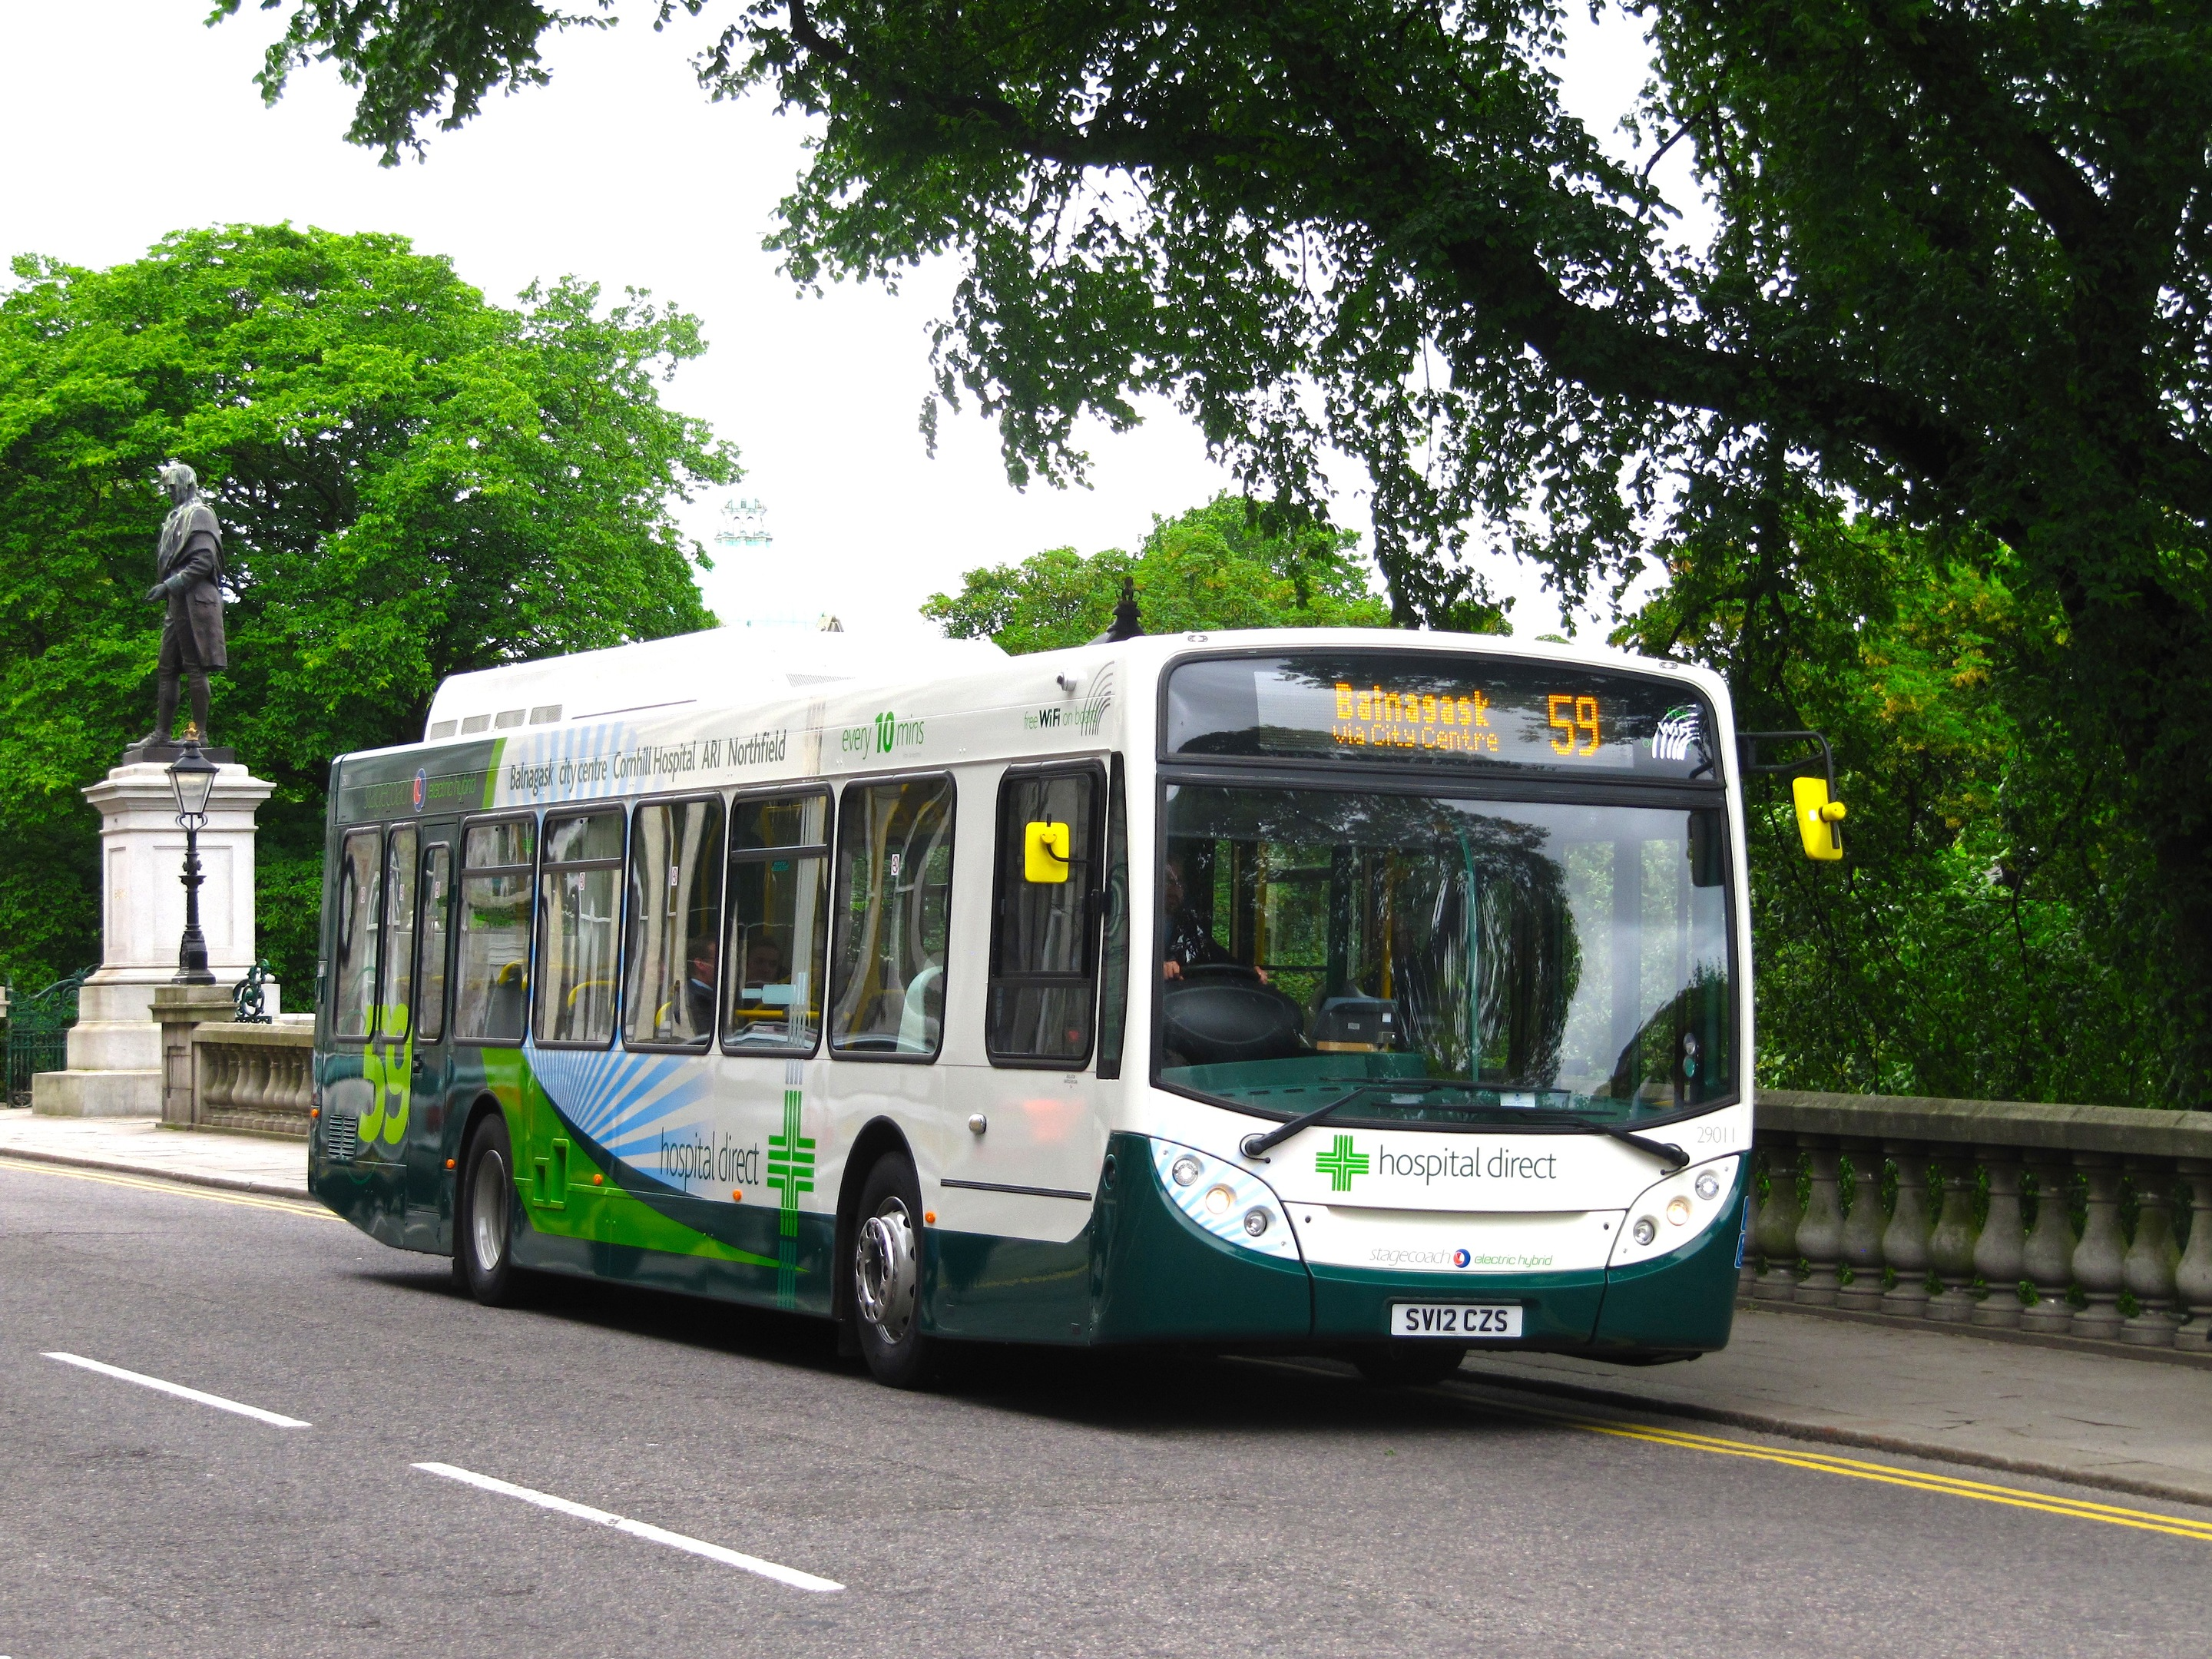 A stagecoach service 59 bus